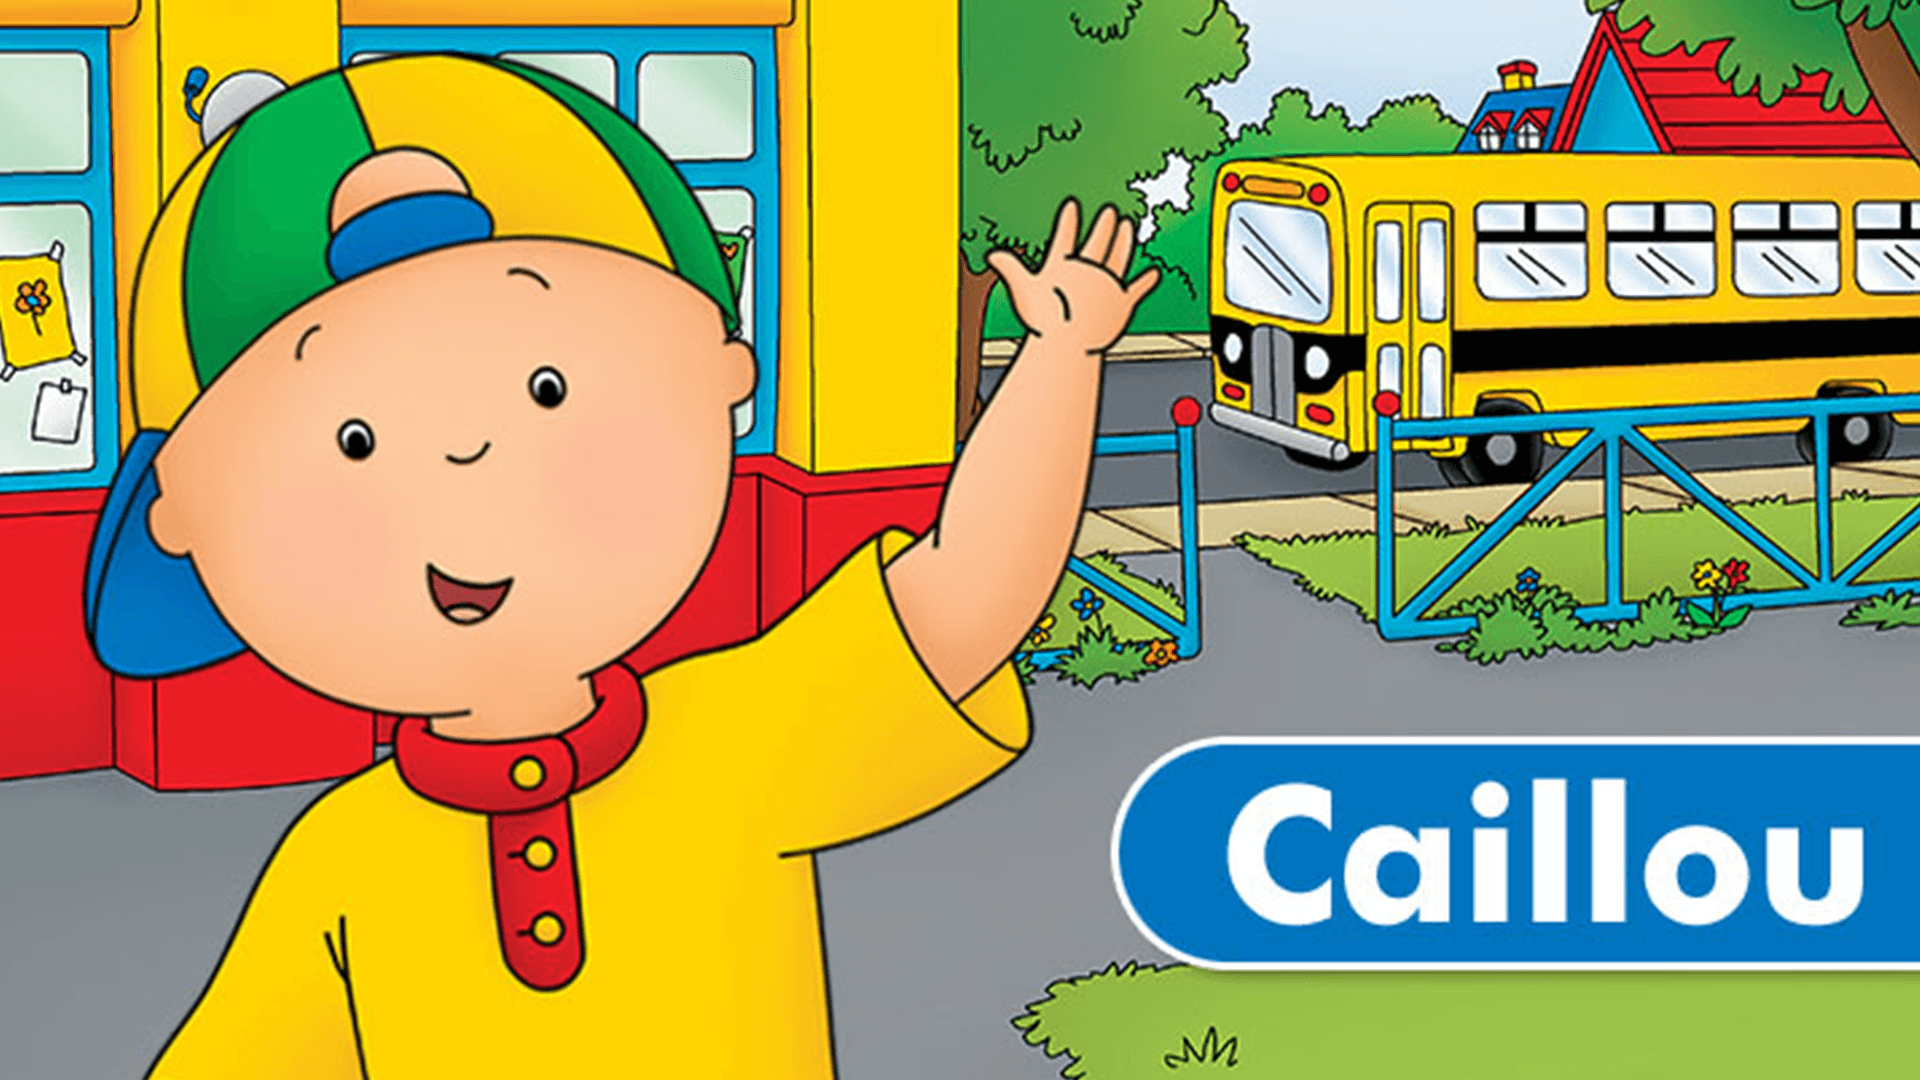 Caillou Canceled: A Long Run Comes To An End